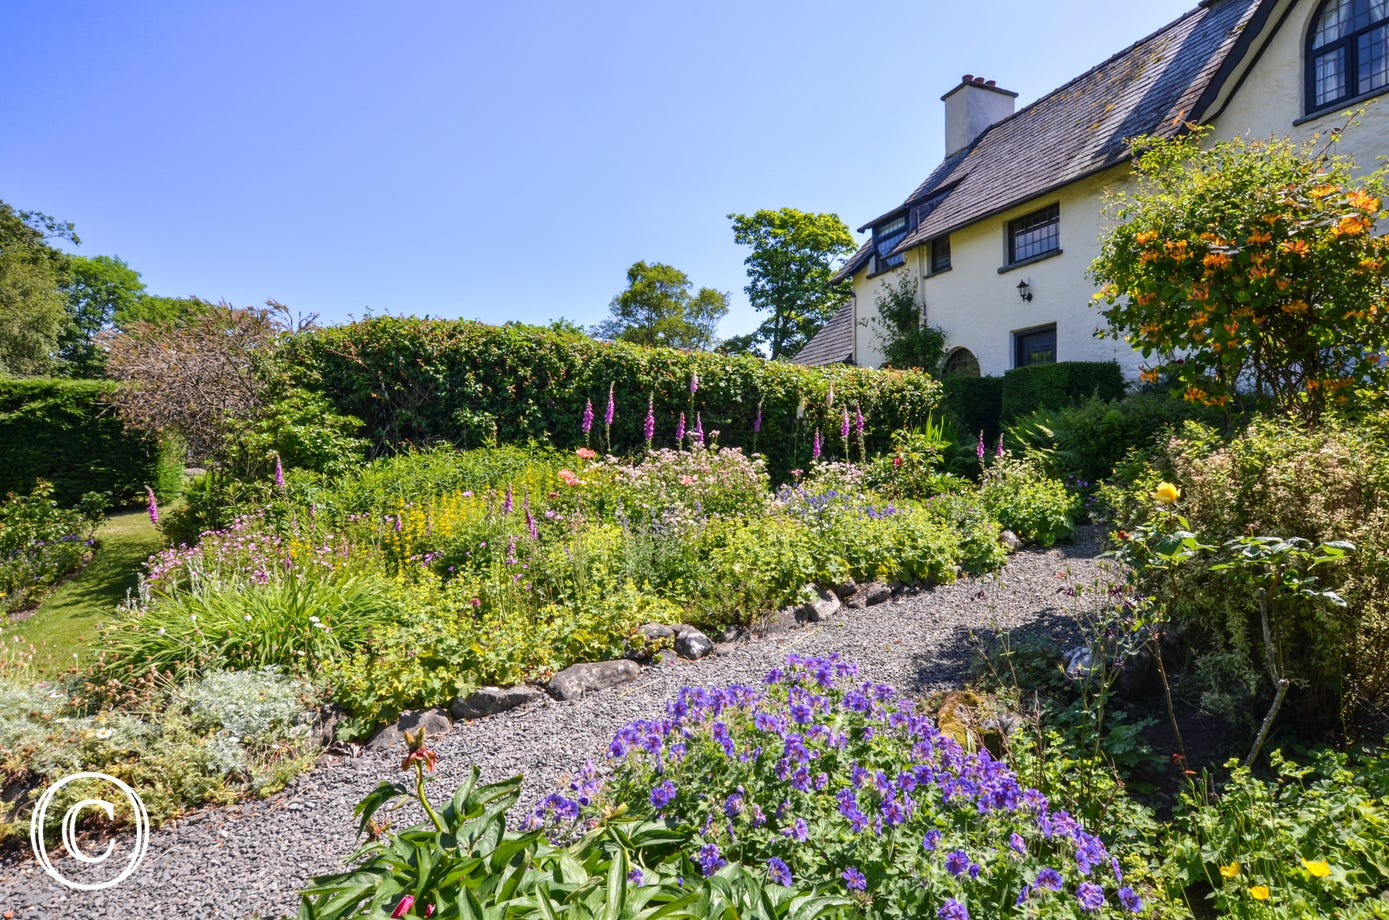 A traditional cottage garden in the June sunshine